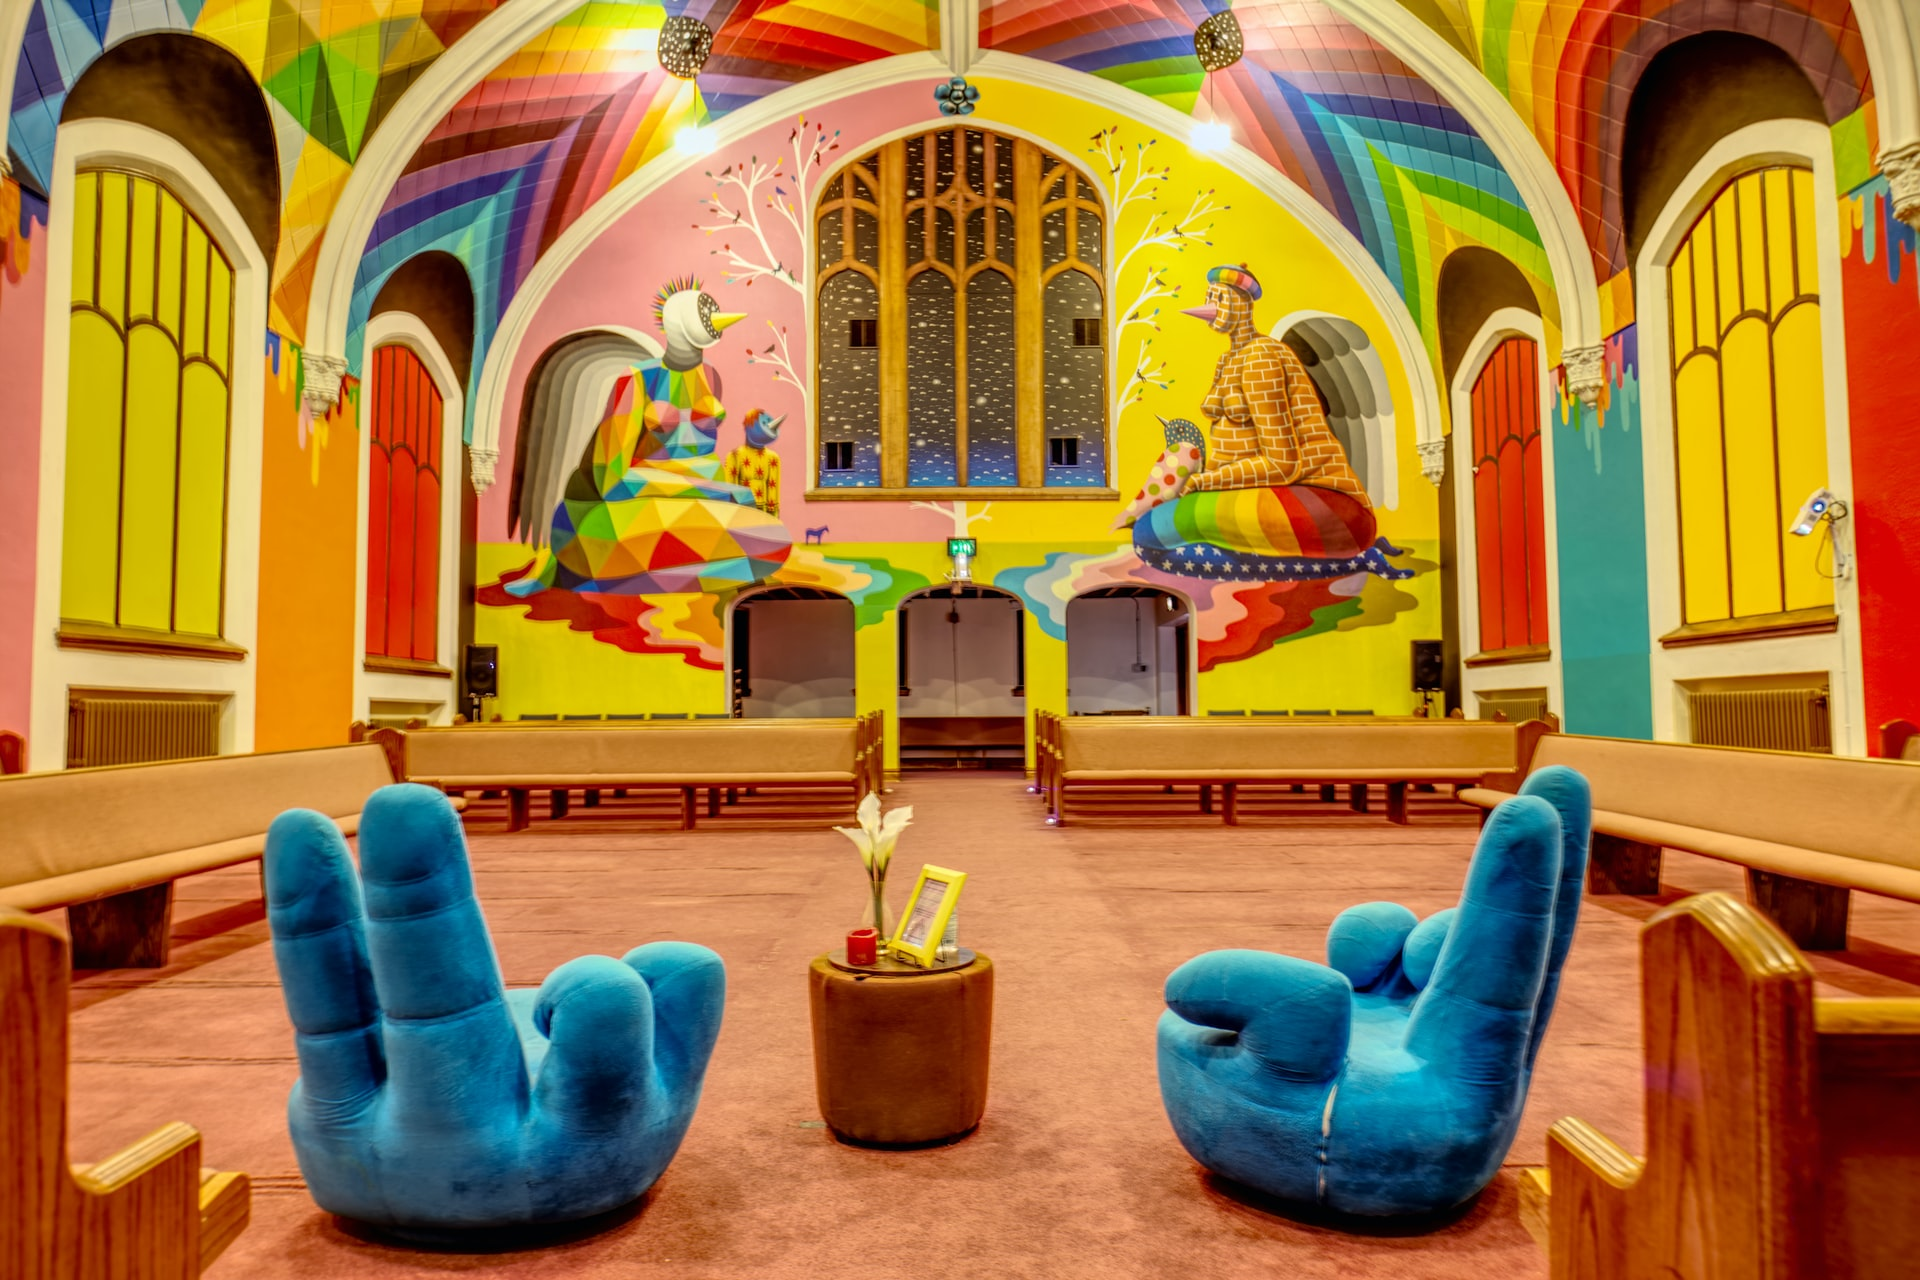 colourful decorations and funky chairs inside church of cannabis